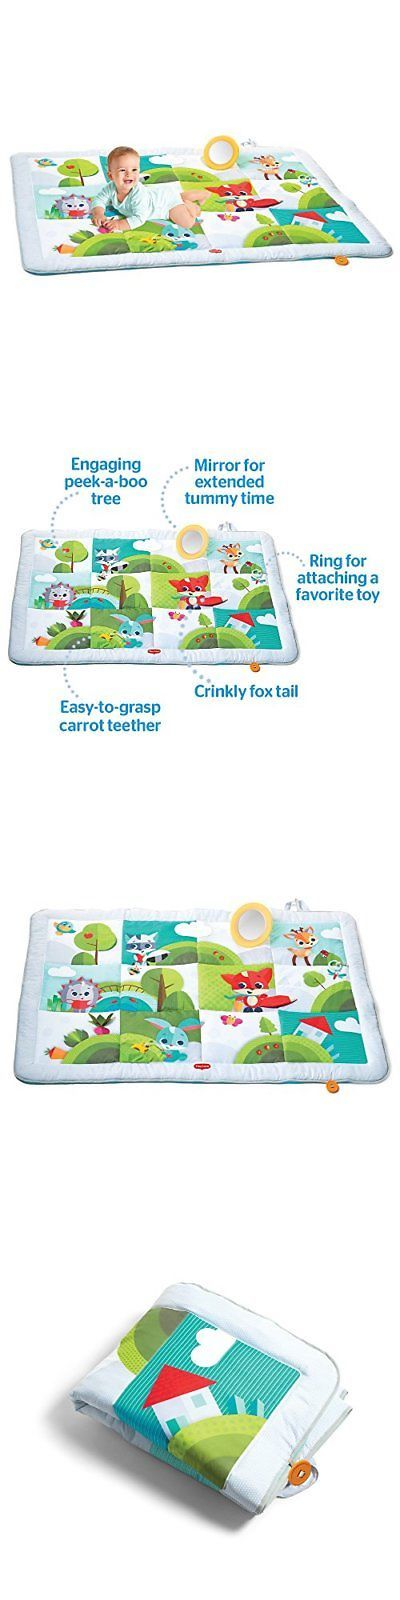 Baby Gyms and Play Mats 19069: Tiny Love Meadow Days Super Mat Meadow Days -> BUY IT NOW ONLY: $49.99 on eBay!